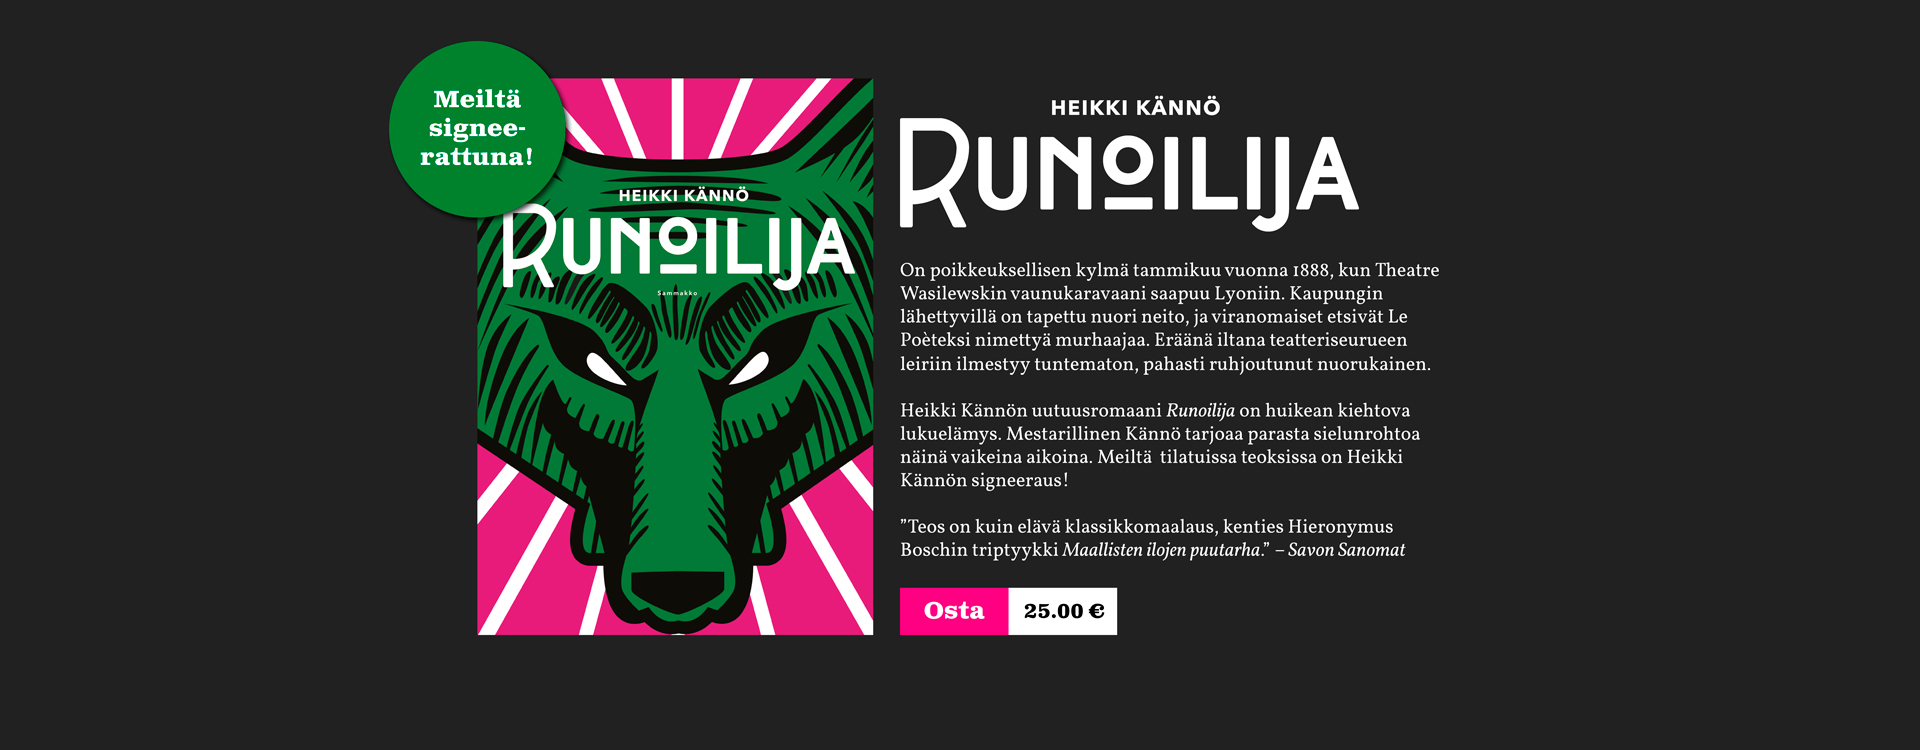 Runoilija-slidemainos